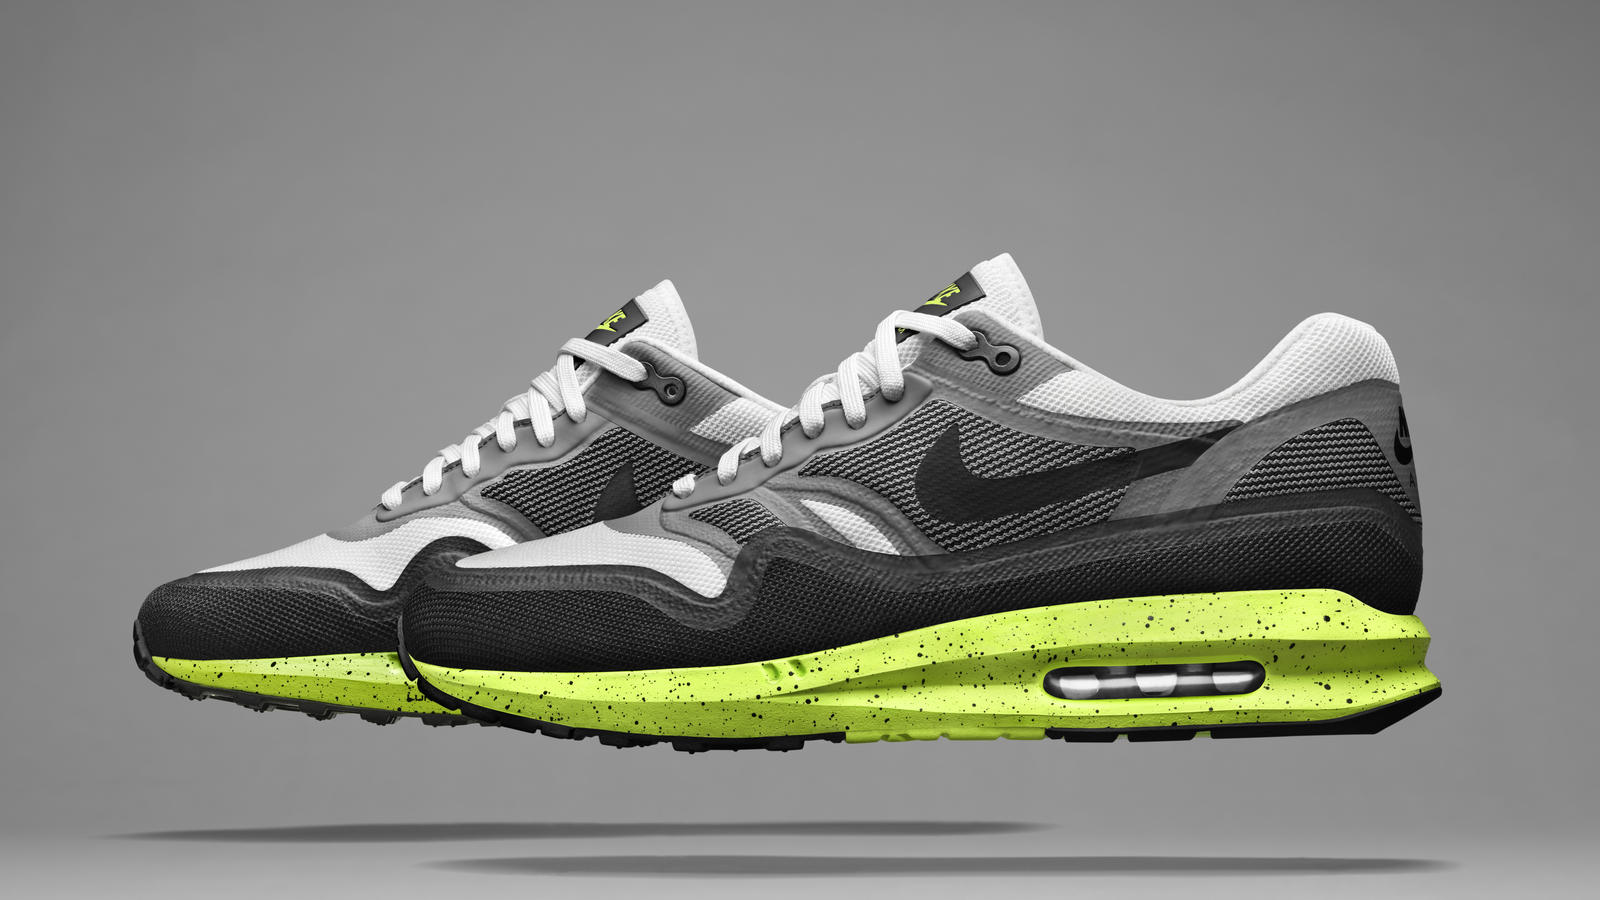 énorme réduction 4b616 5695e Re-Revolutionized: The Air Max Lunar1 - Nike News